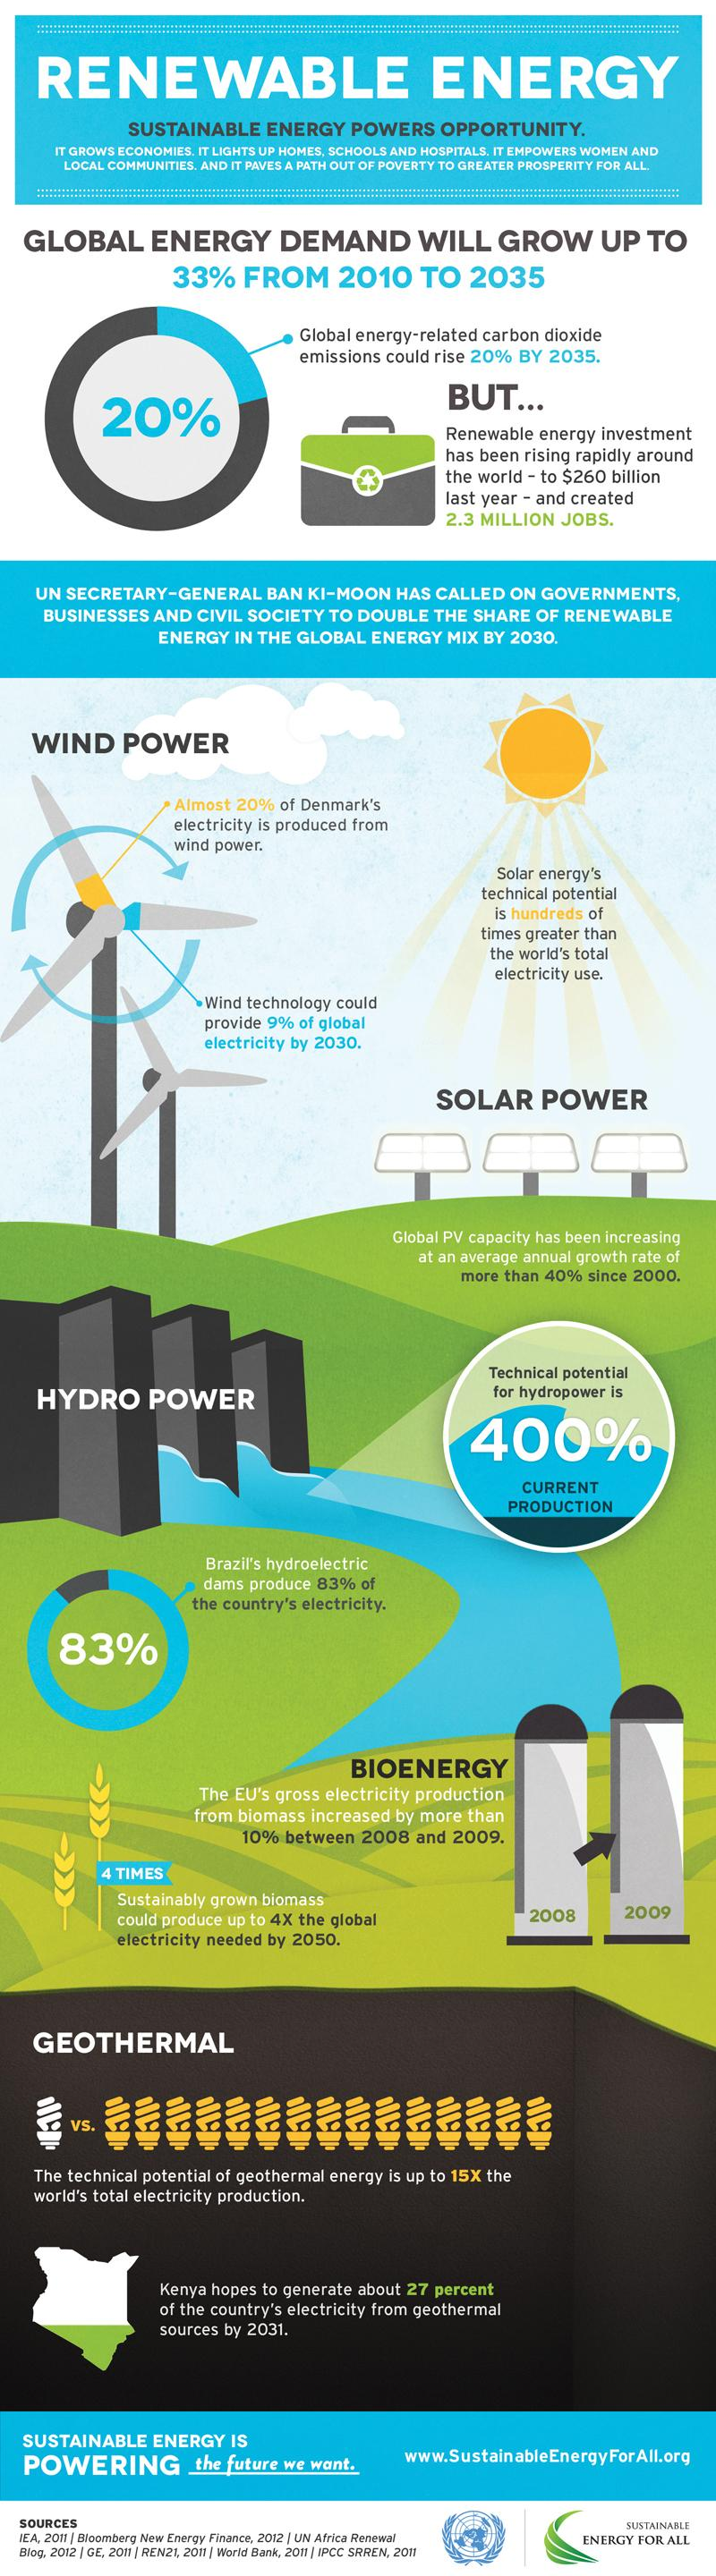 Sustainable Energy For All: Renewable Energy Infographic